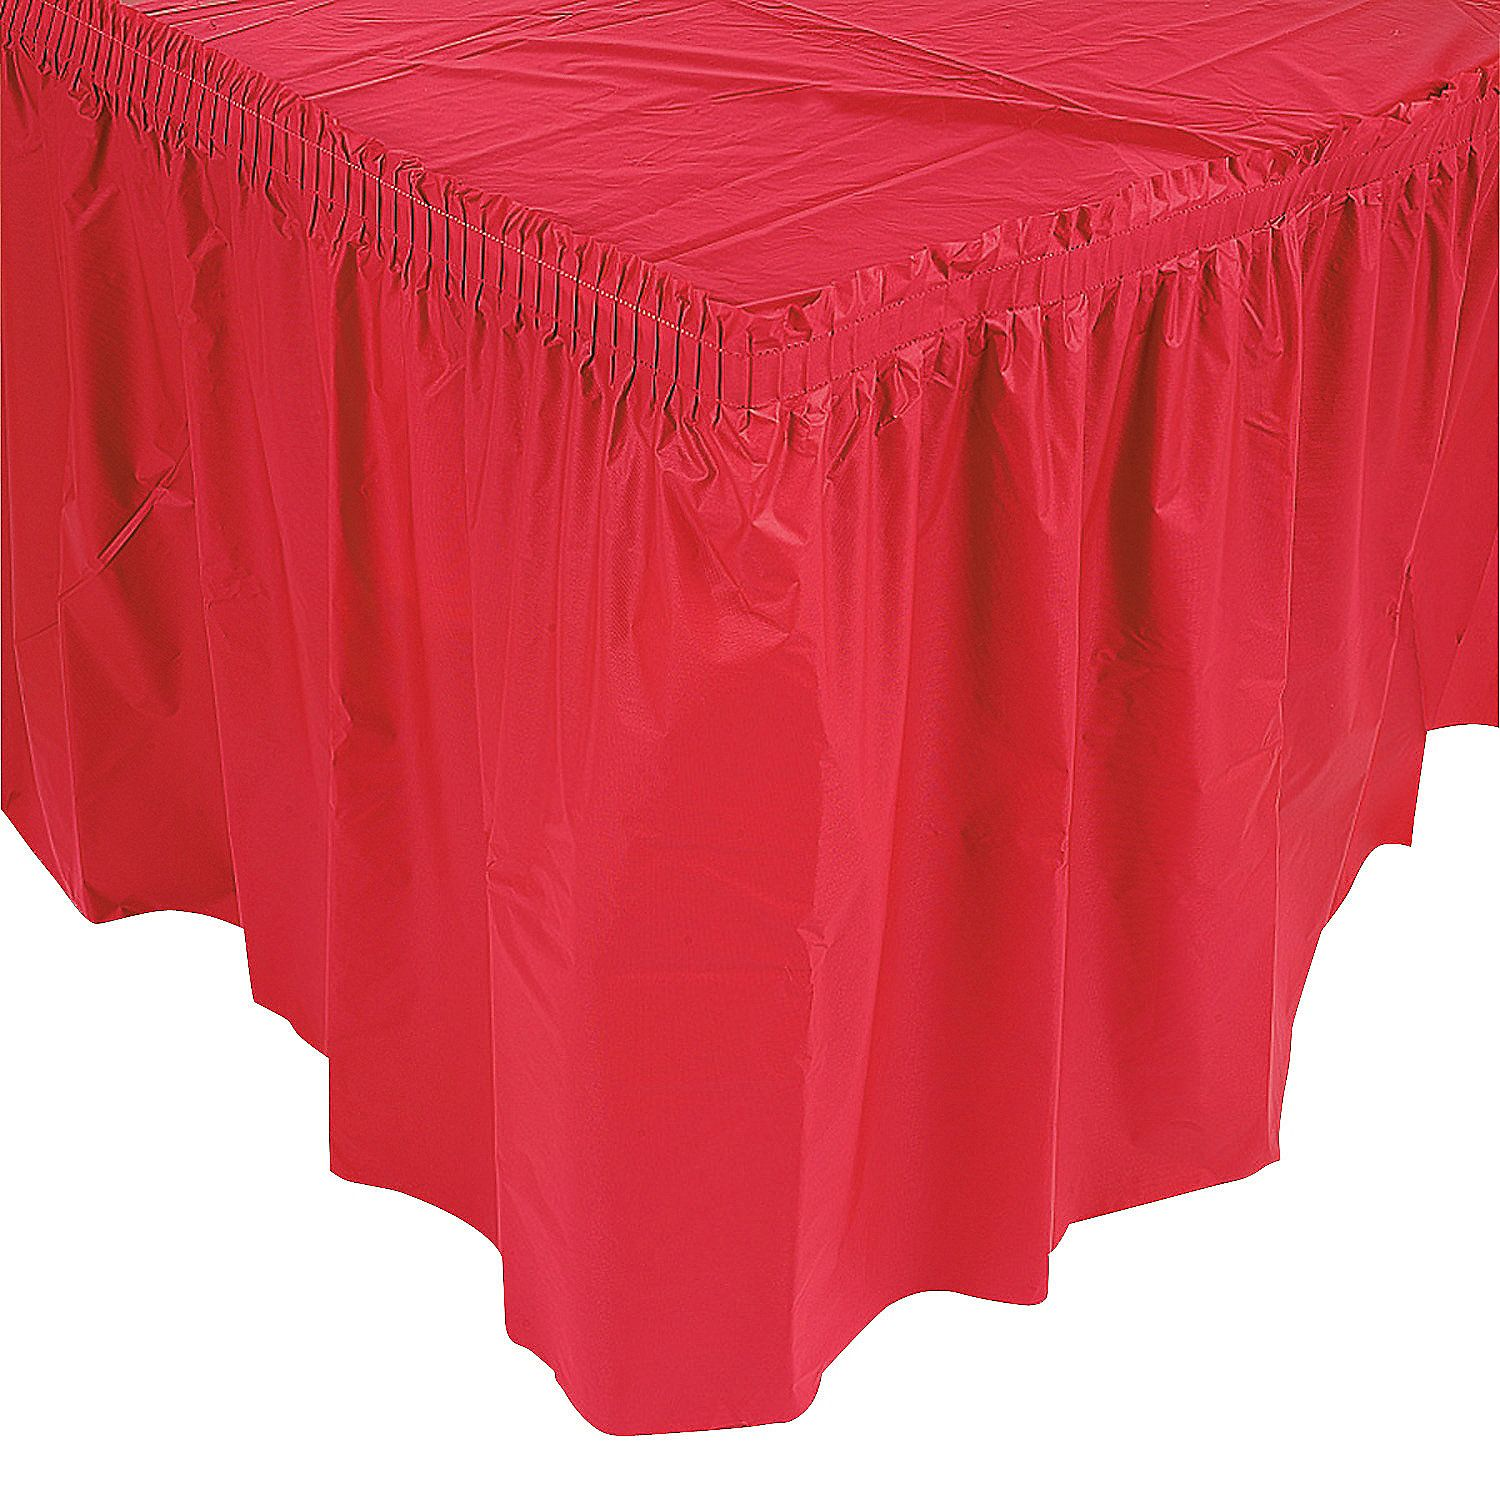 Pleated Table Skirts Ruffled Tablecloth Party